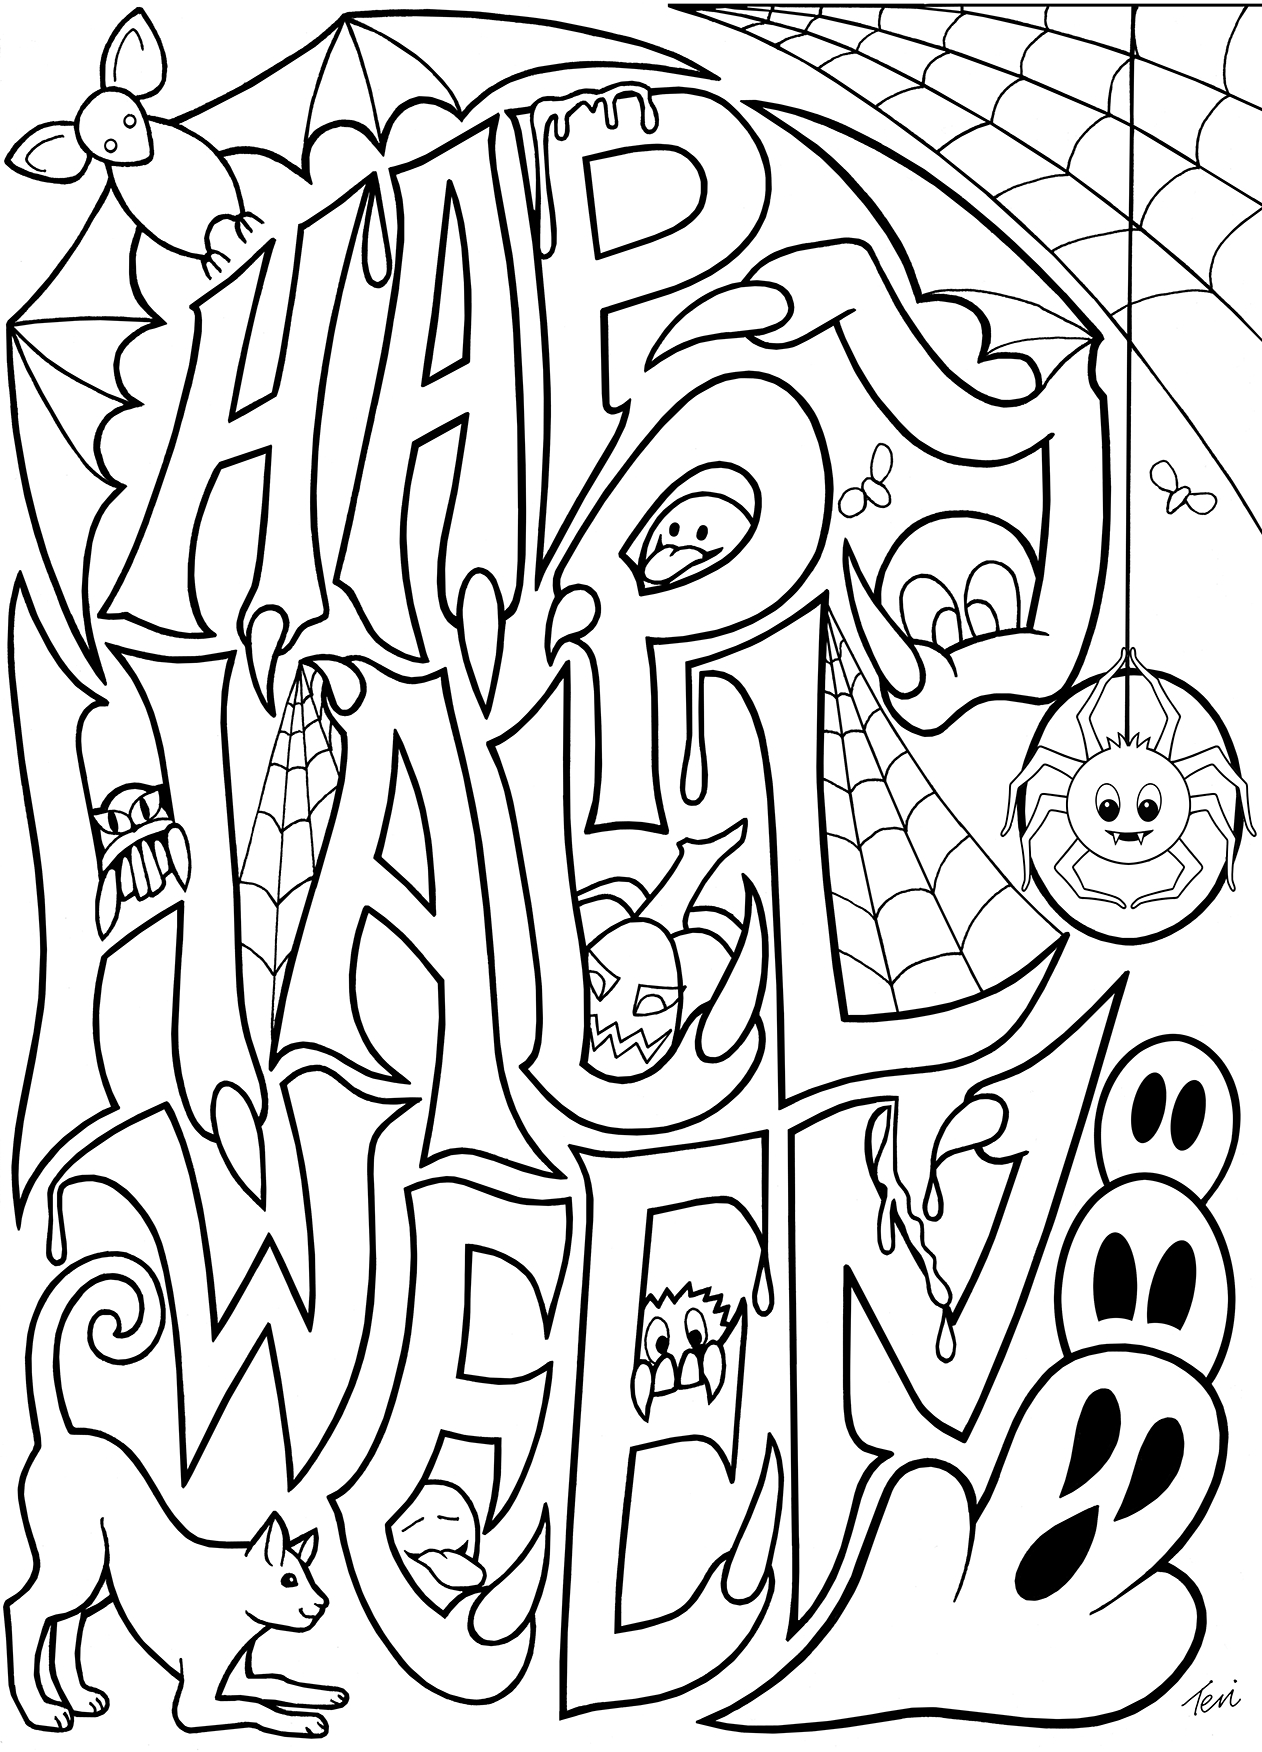 haloween coloring pages free printables halloween coloring pages at getcolorings haloween pages coloring